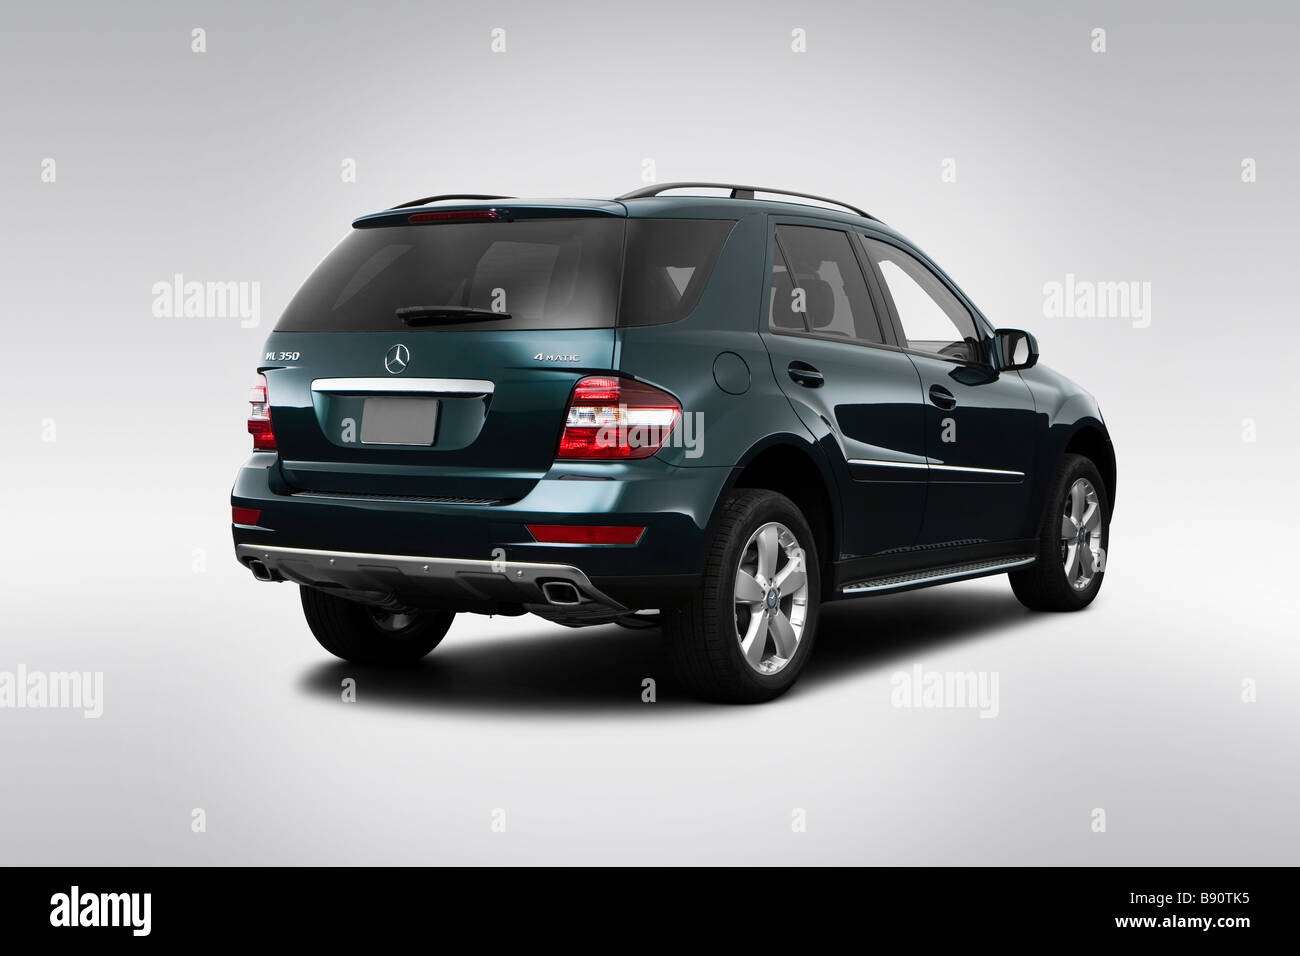 2009 mercedes benz m class ml350 in green rear angle for 2009 mercedes benz ml350